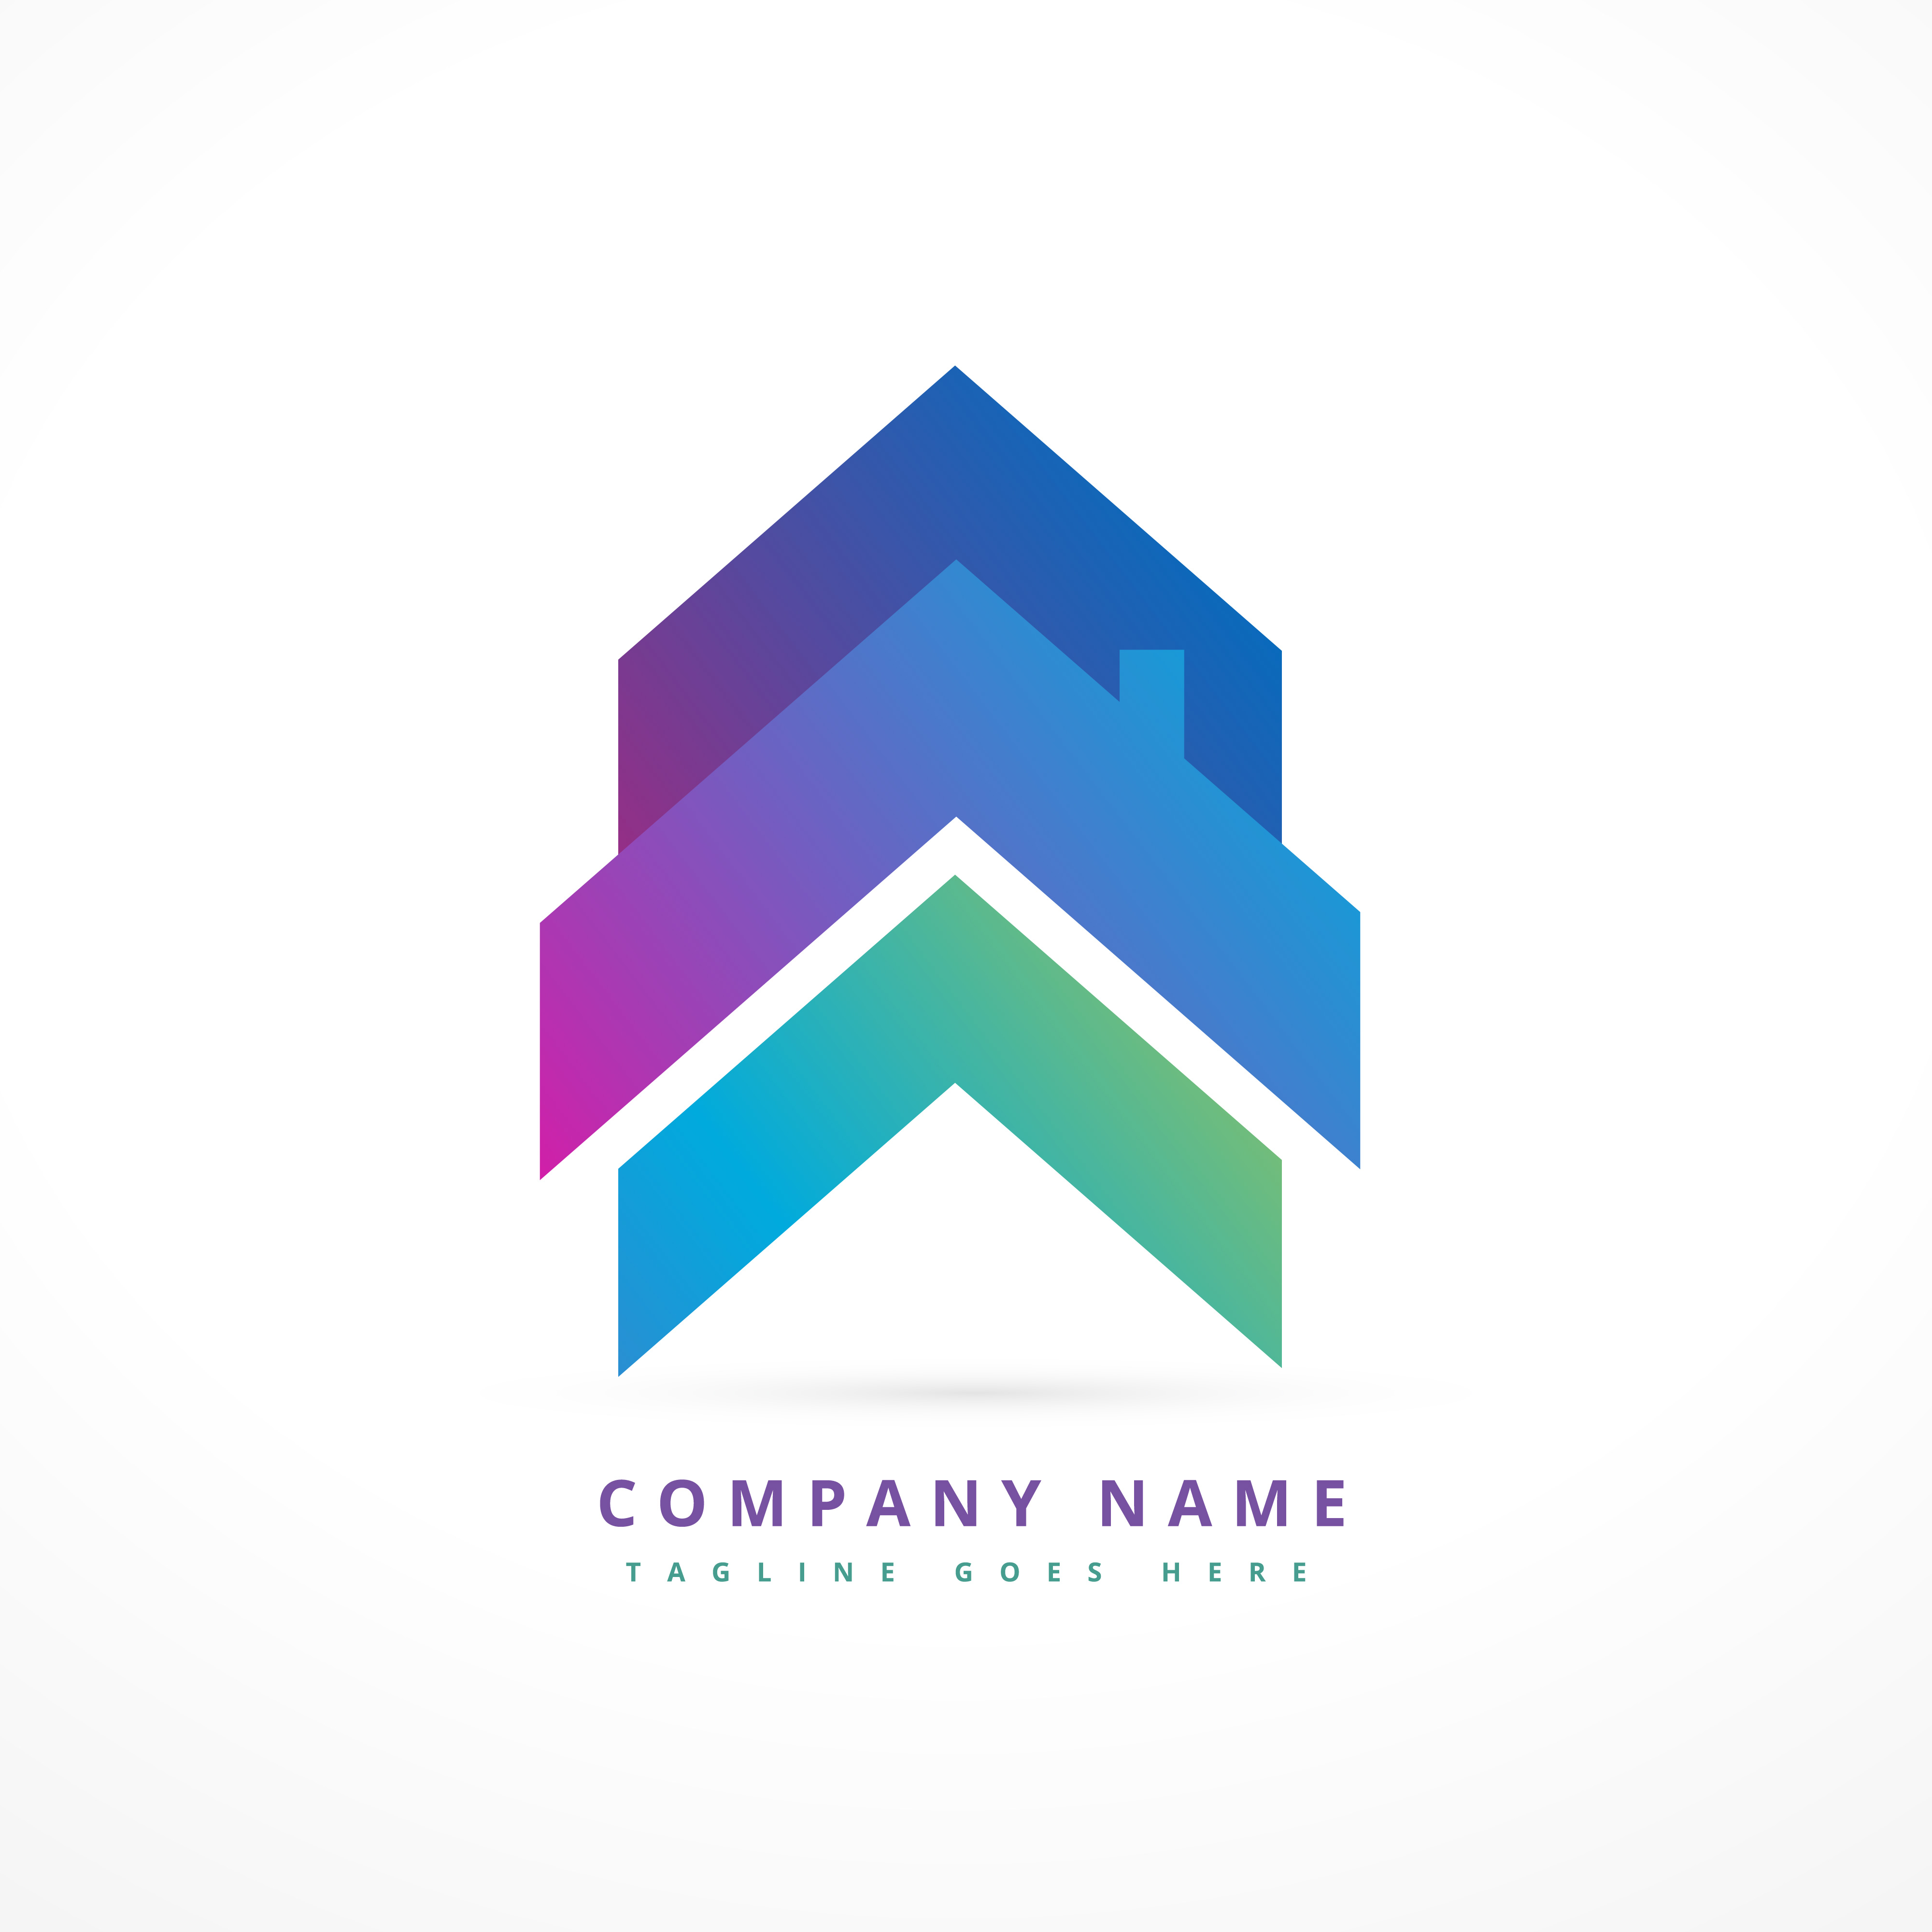 Arrow house business logo design download free vector for Designing company